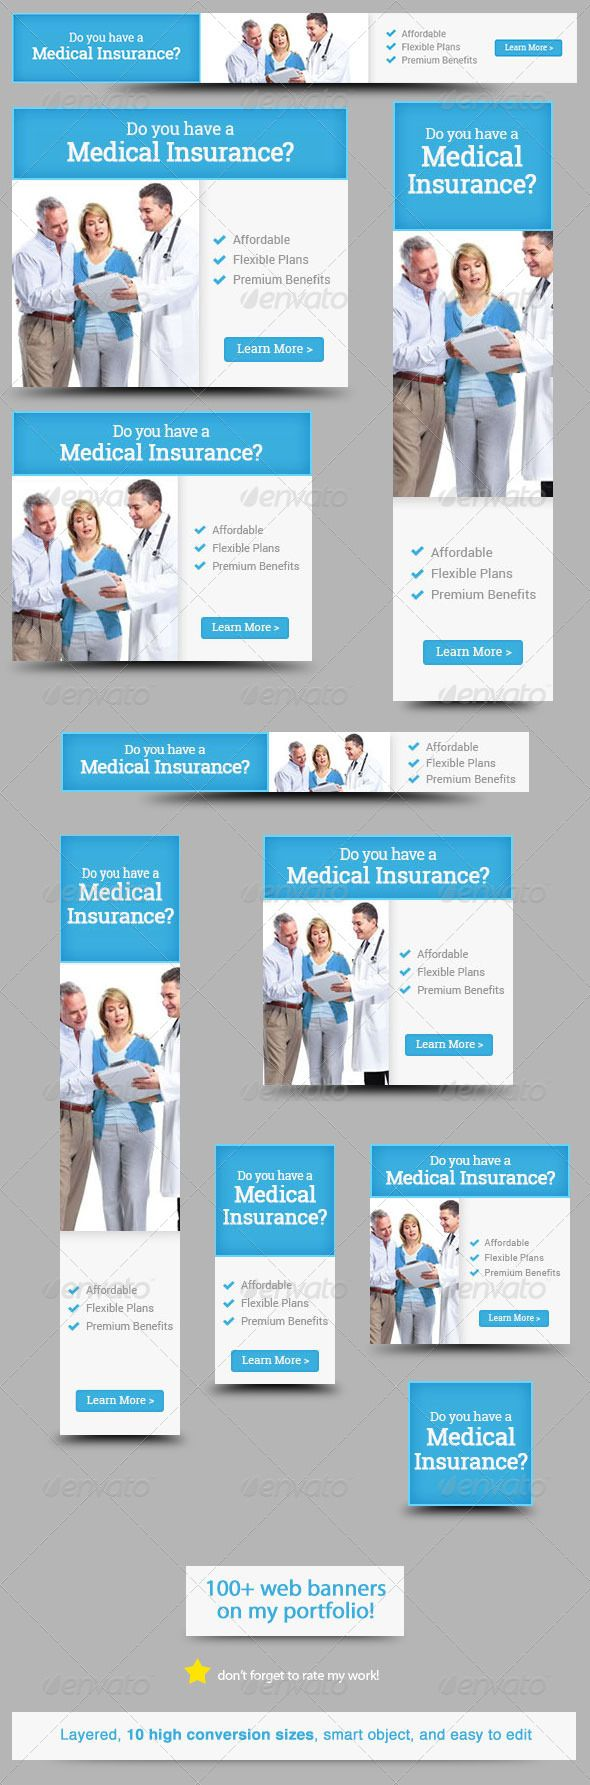 Medical Insurance Web Banner Design Template PSD | Buy and Download: http://graphicriver.net/item/medical-insurance-web-banner-design/5767479?WT.ac=category_thumb&WT.z_author=admiral_adictus&ref=ksioks